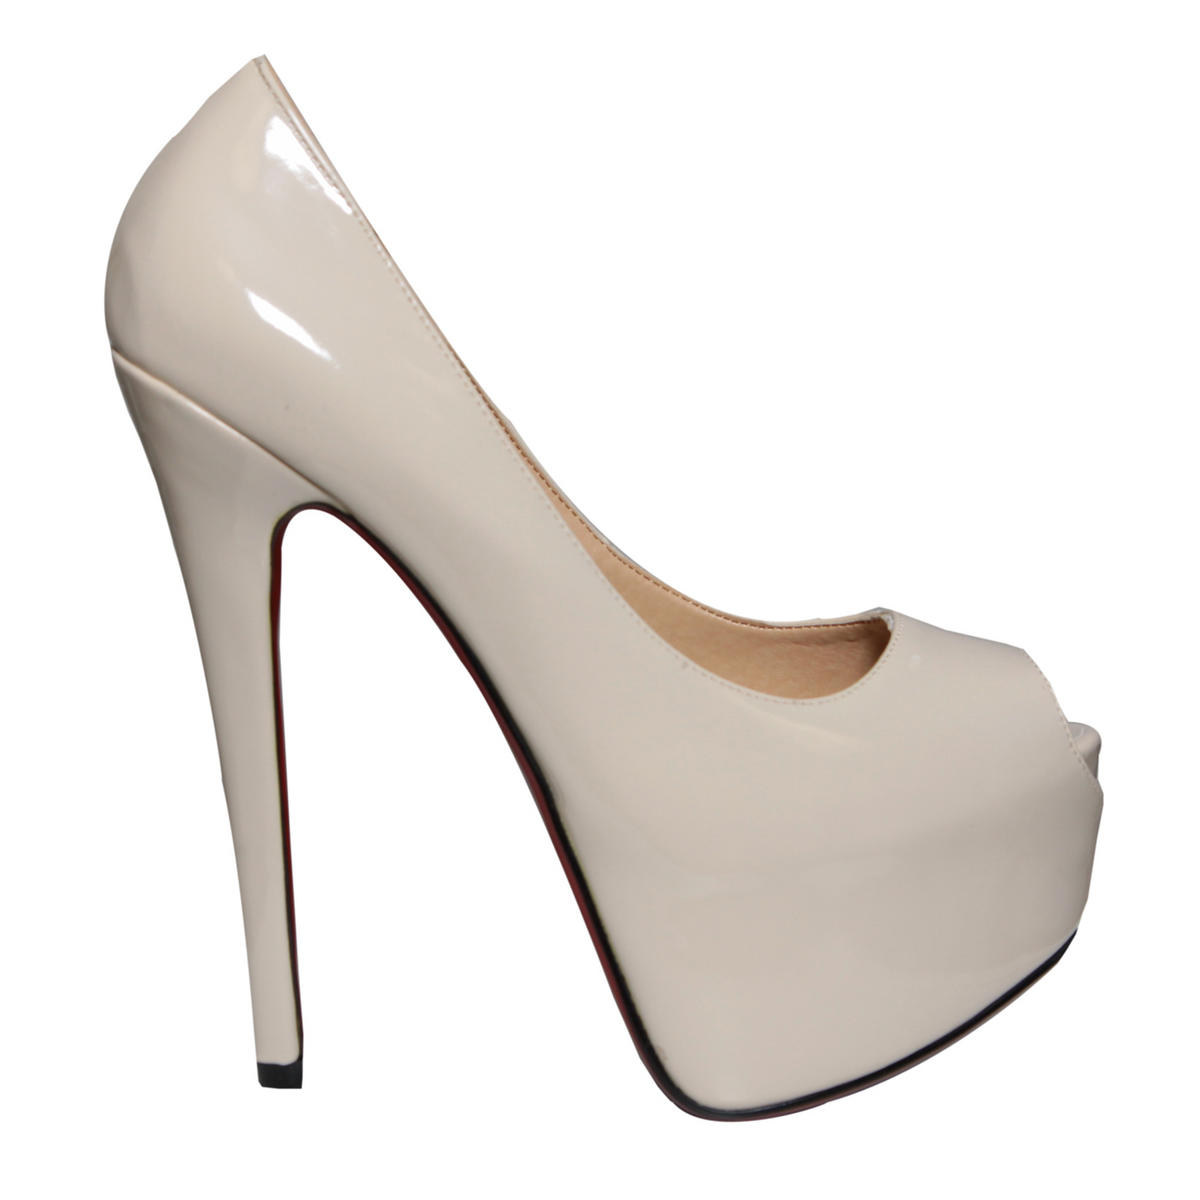 Nude Peeptoe Platform Shoe Preview